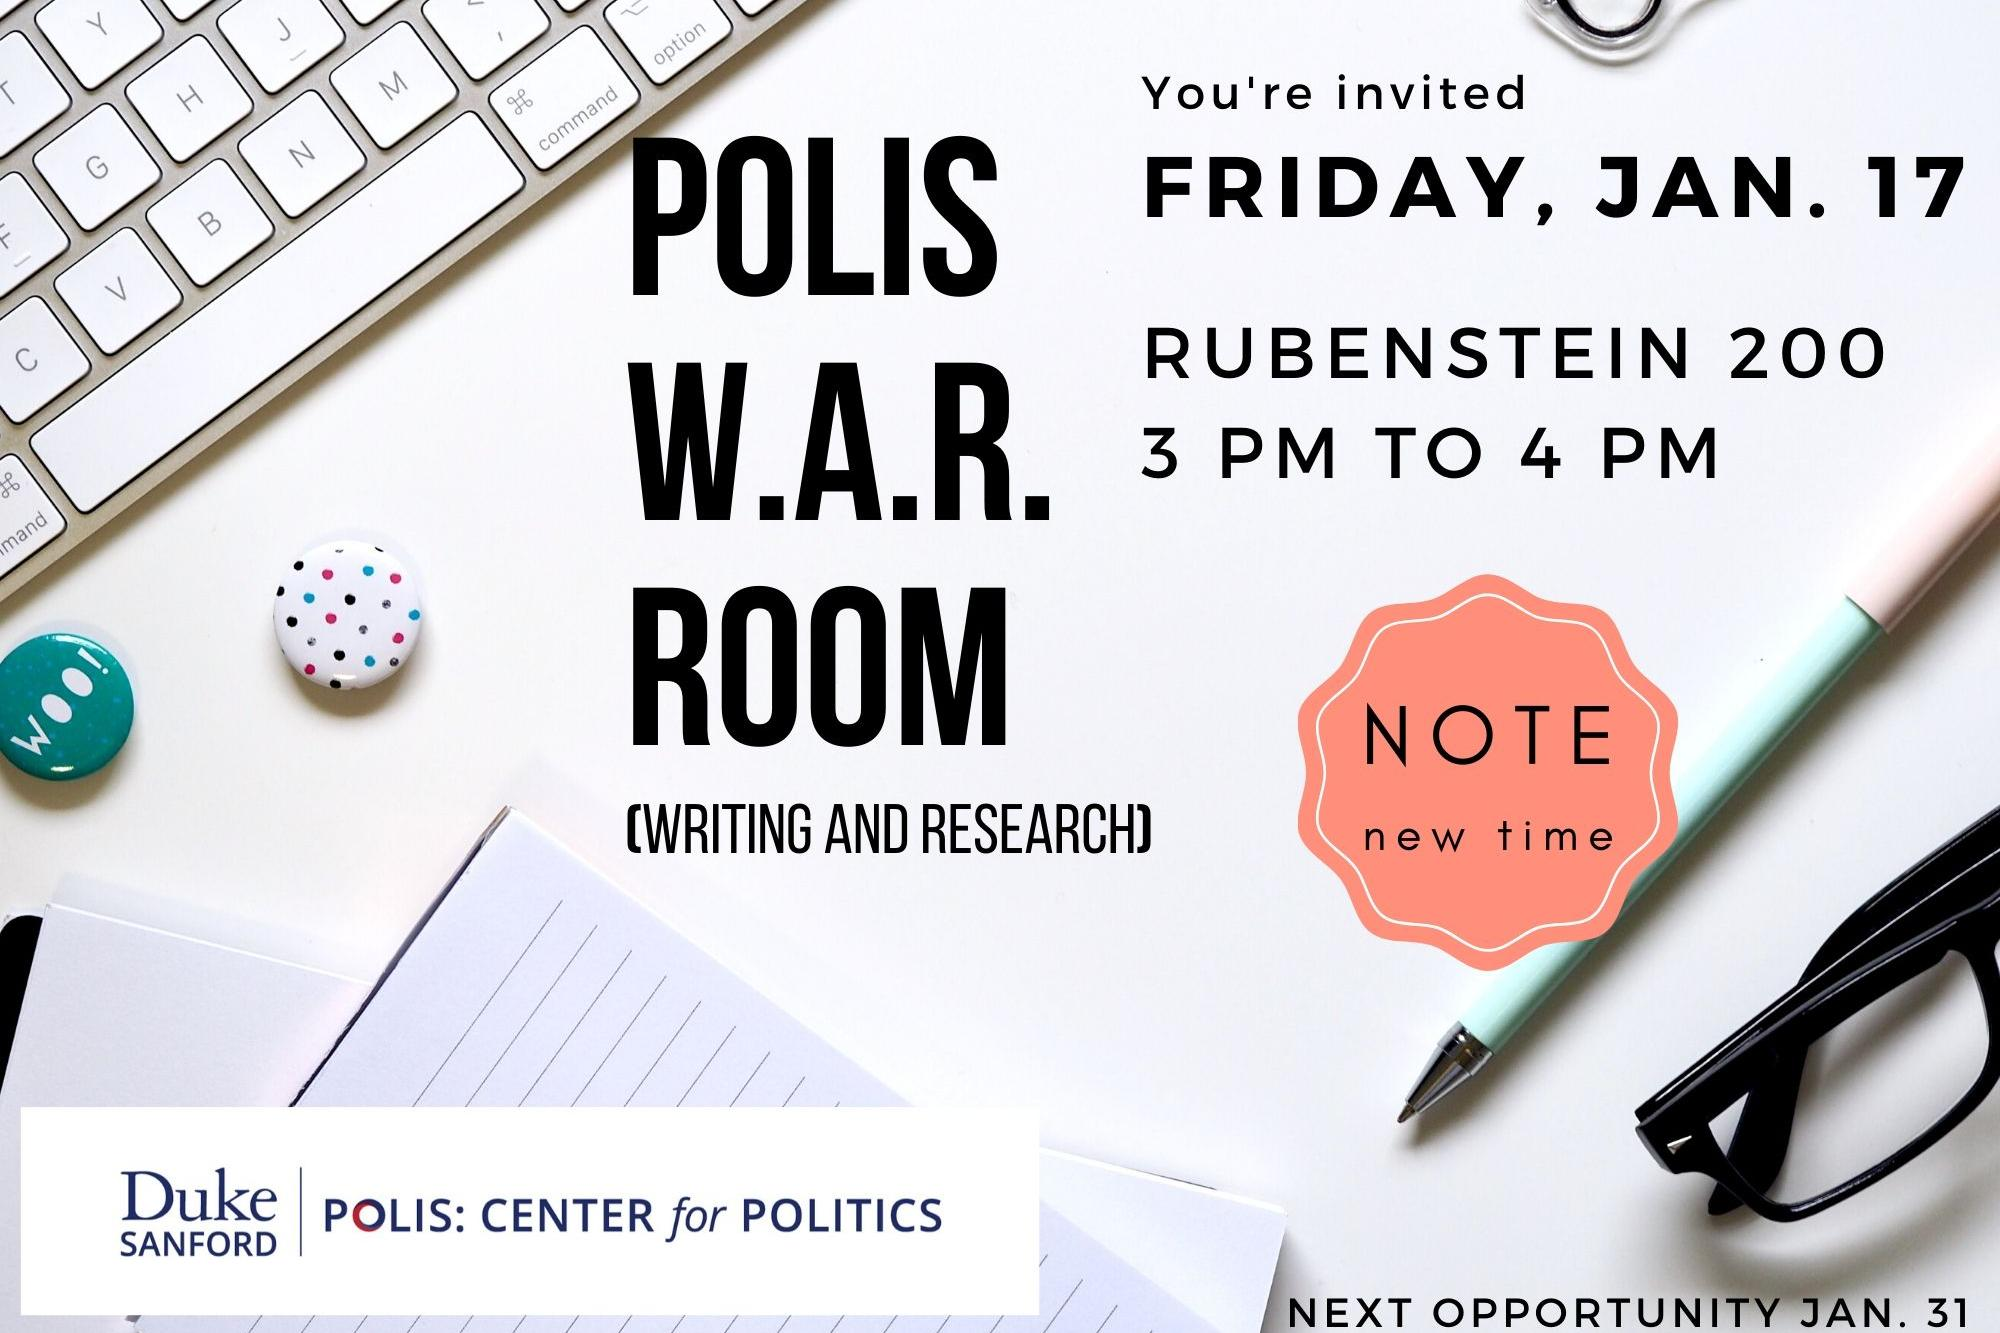 Join us in Rubenstein 200 at 3pm on Friday